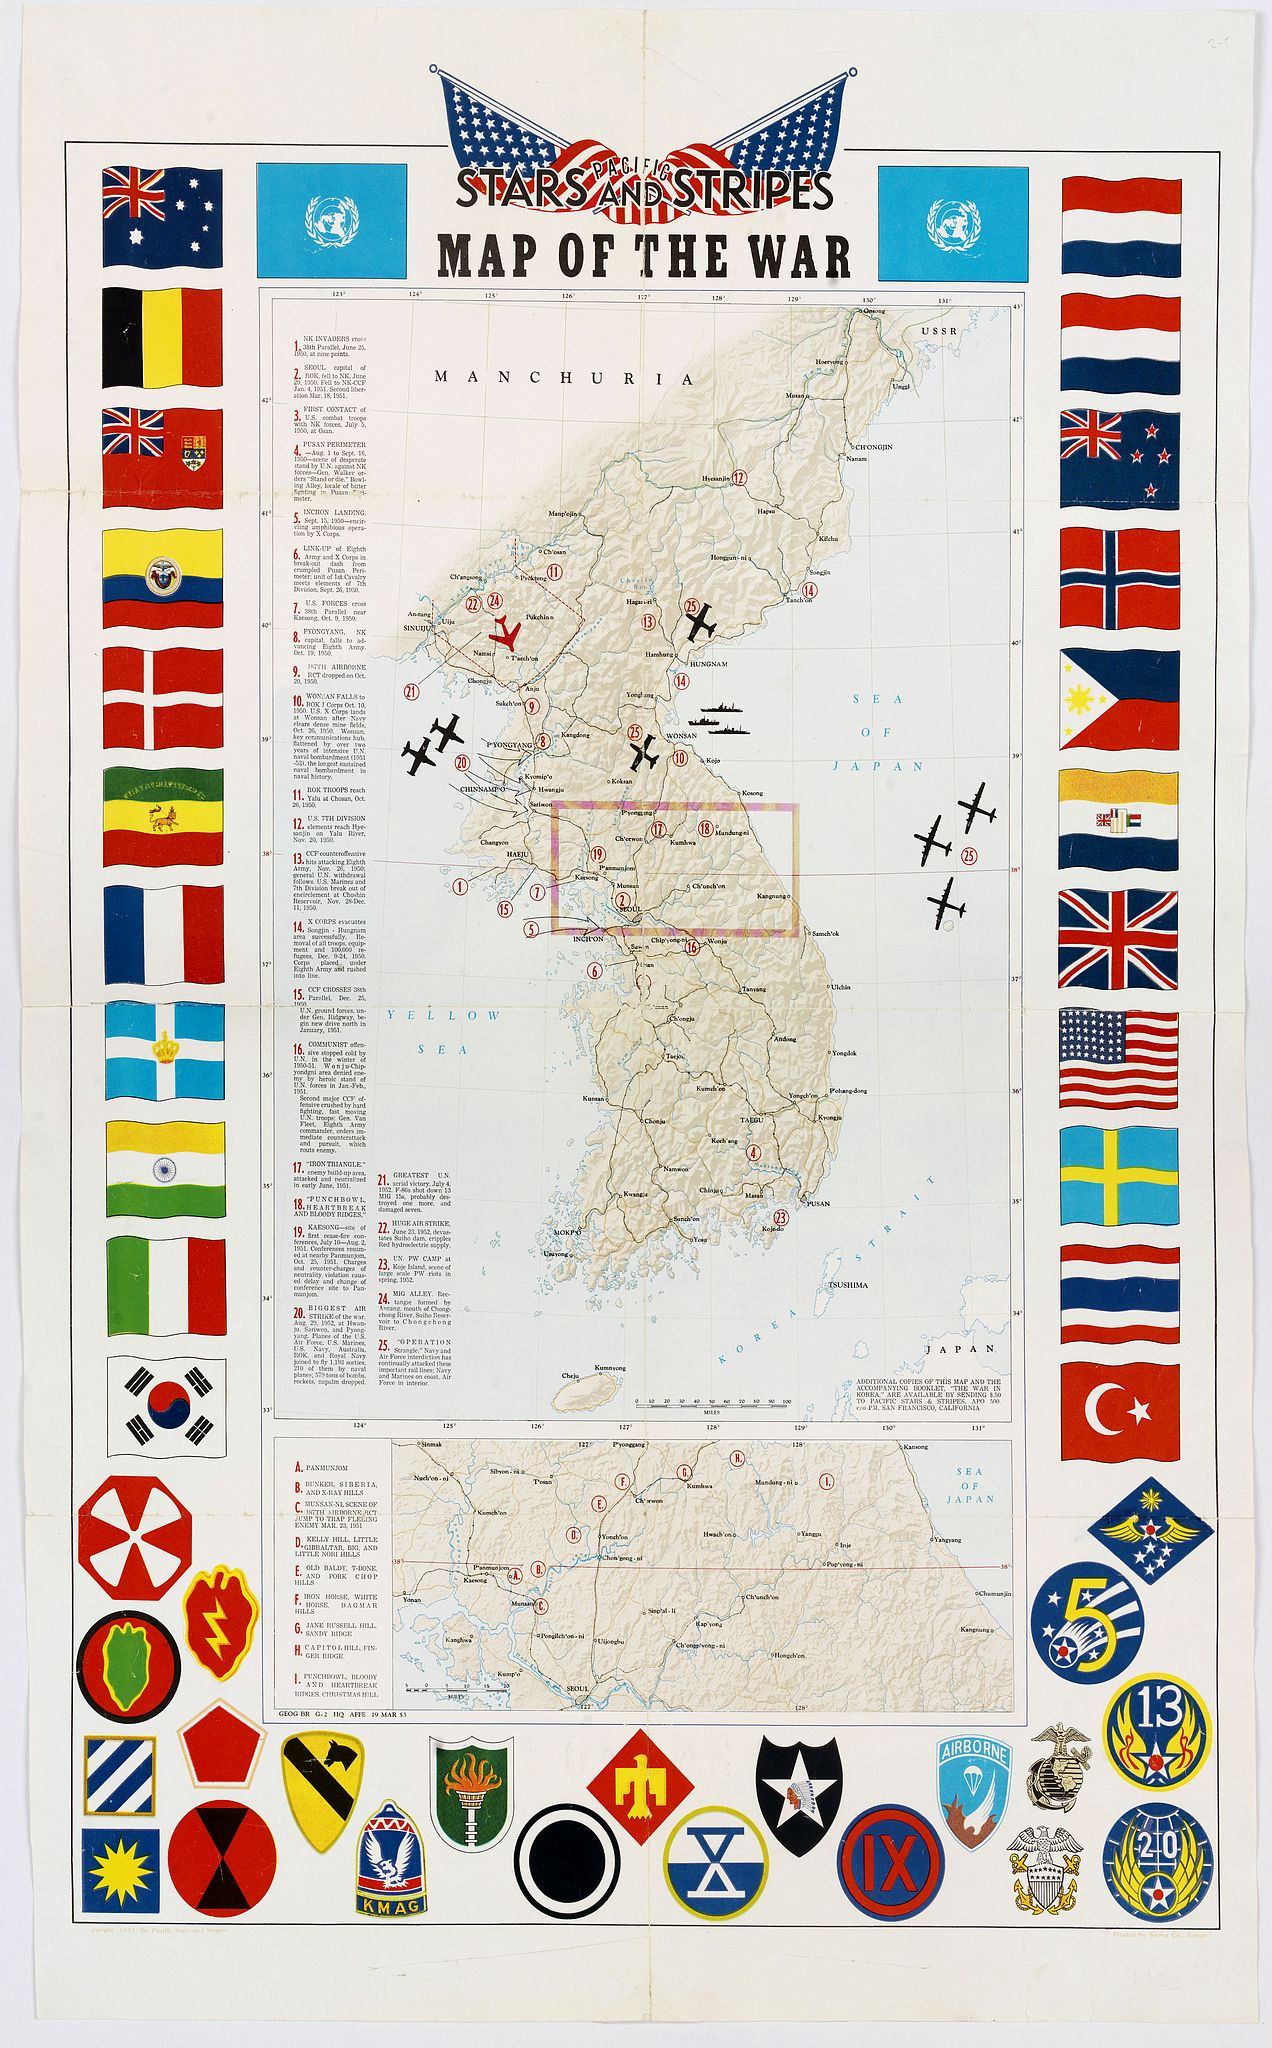 THE PACIFIC STARS AND STRIPES. -  Pacific Stars and Strips Map of the War.